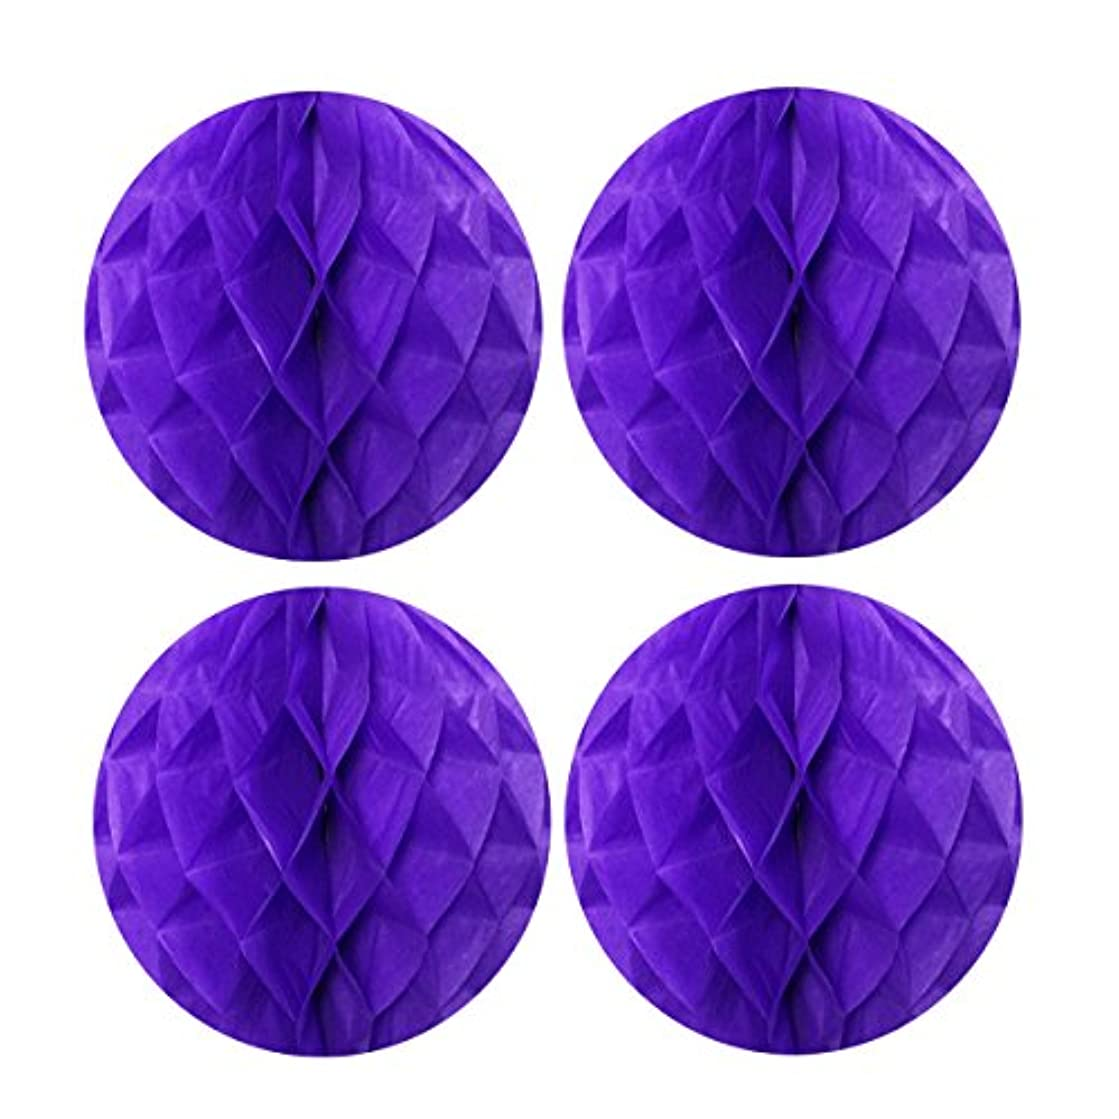 Allydrew Hanging Party Decoration, 8 Inch Tissue Honeycomb Ball for Weddings, Birthday Parties, Baby Showers, and Nursery Décor (4 pack), Purple